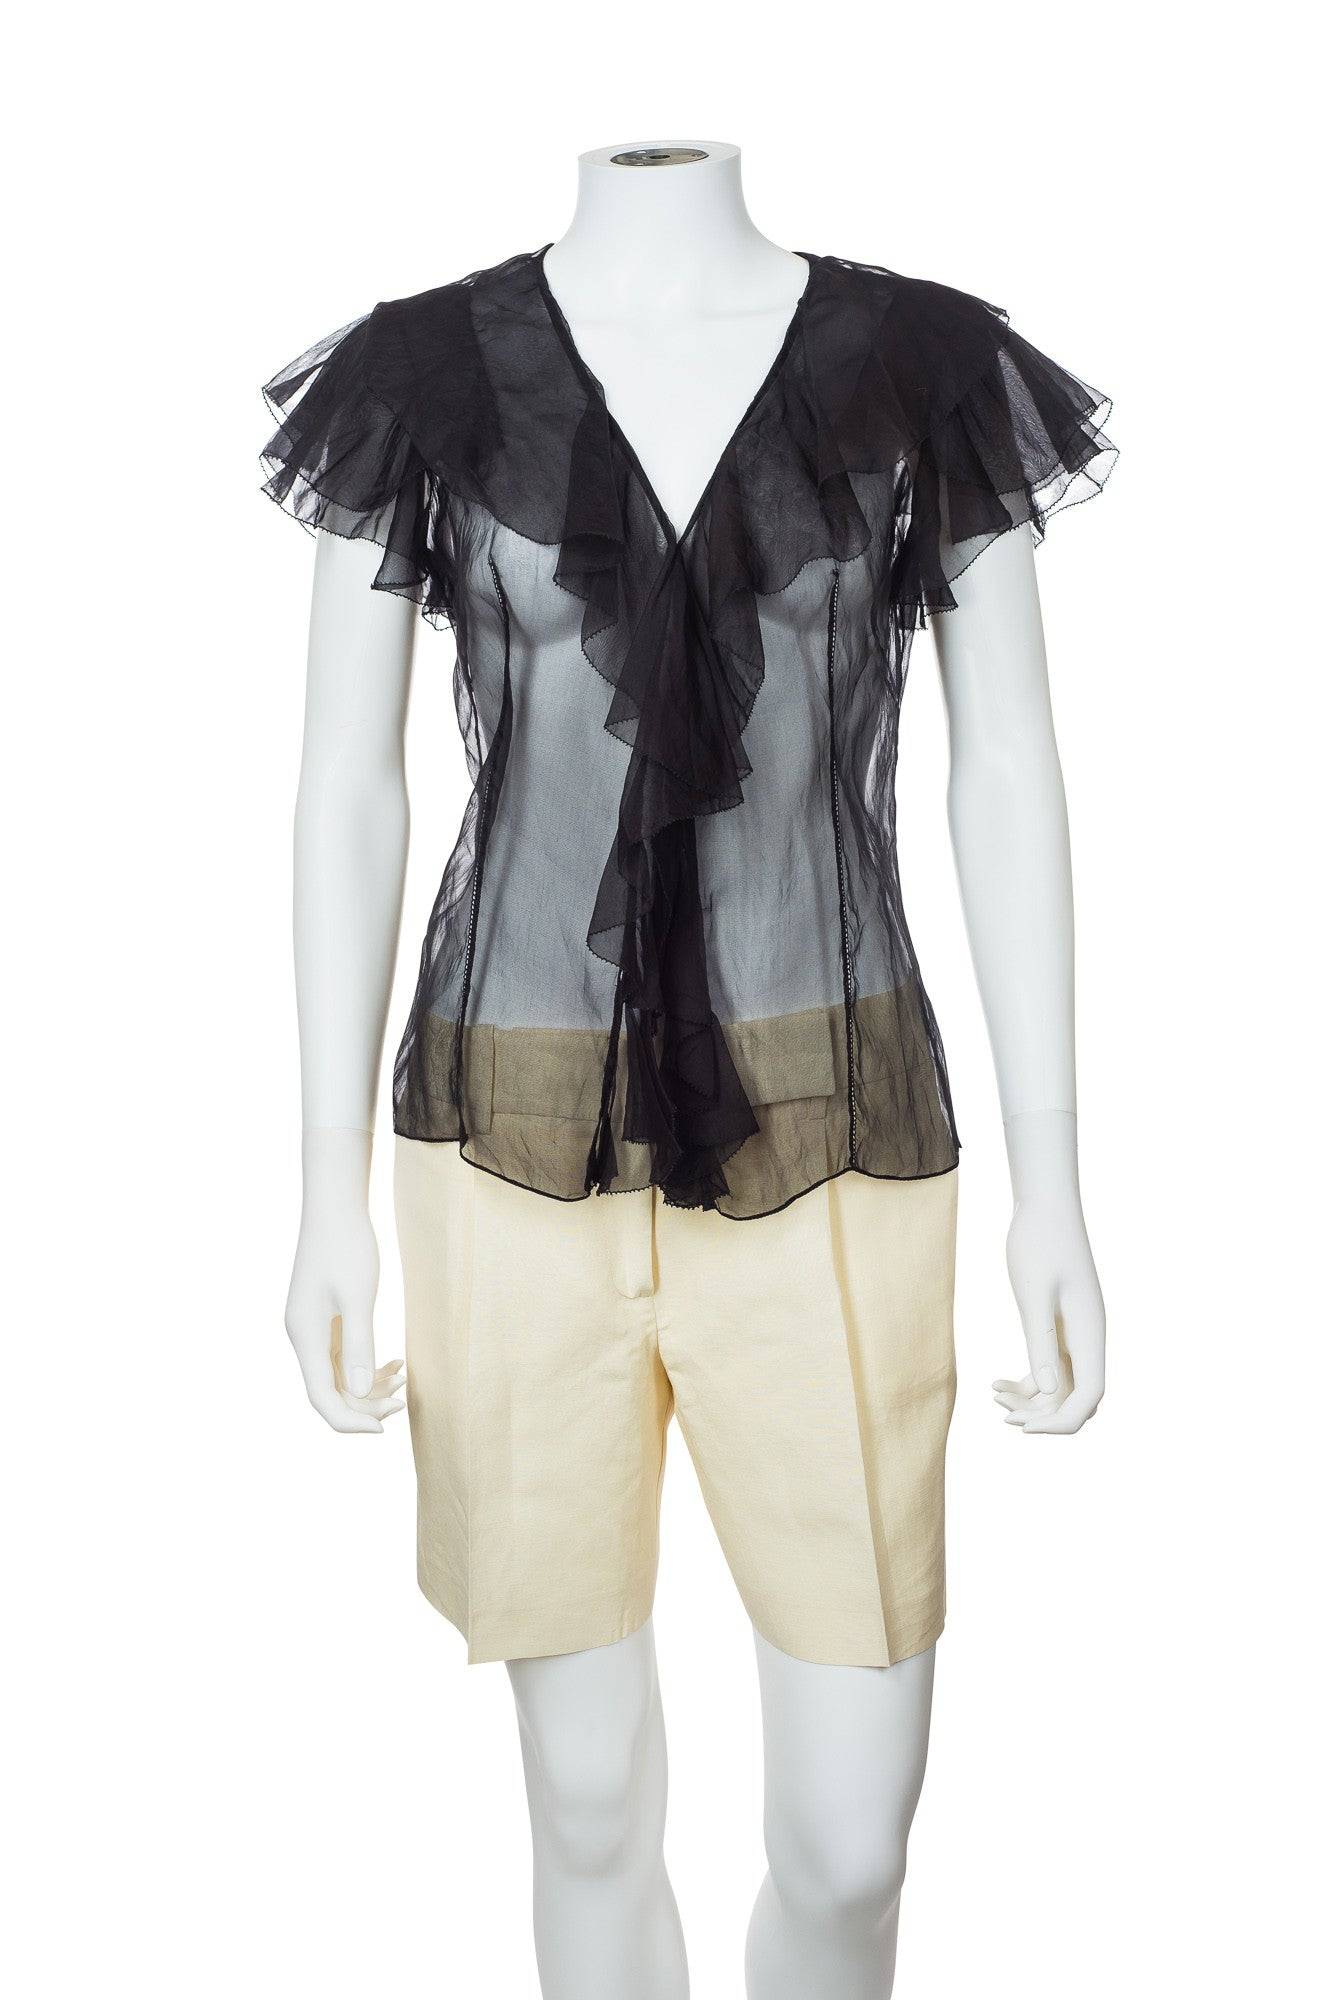 Ralph Lauren Sheer Blouse